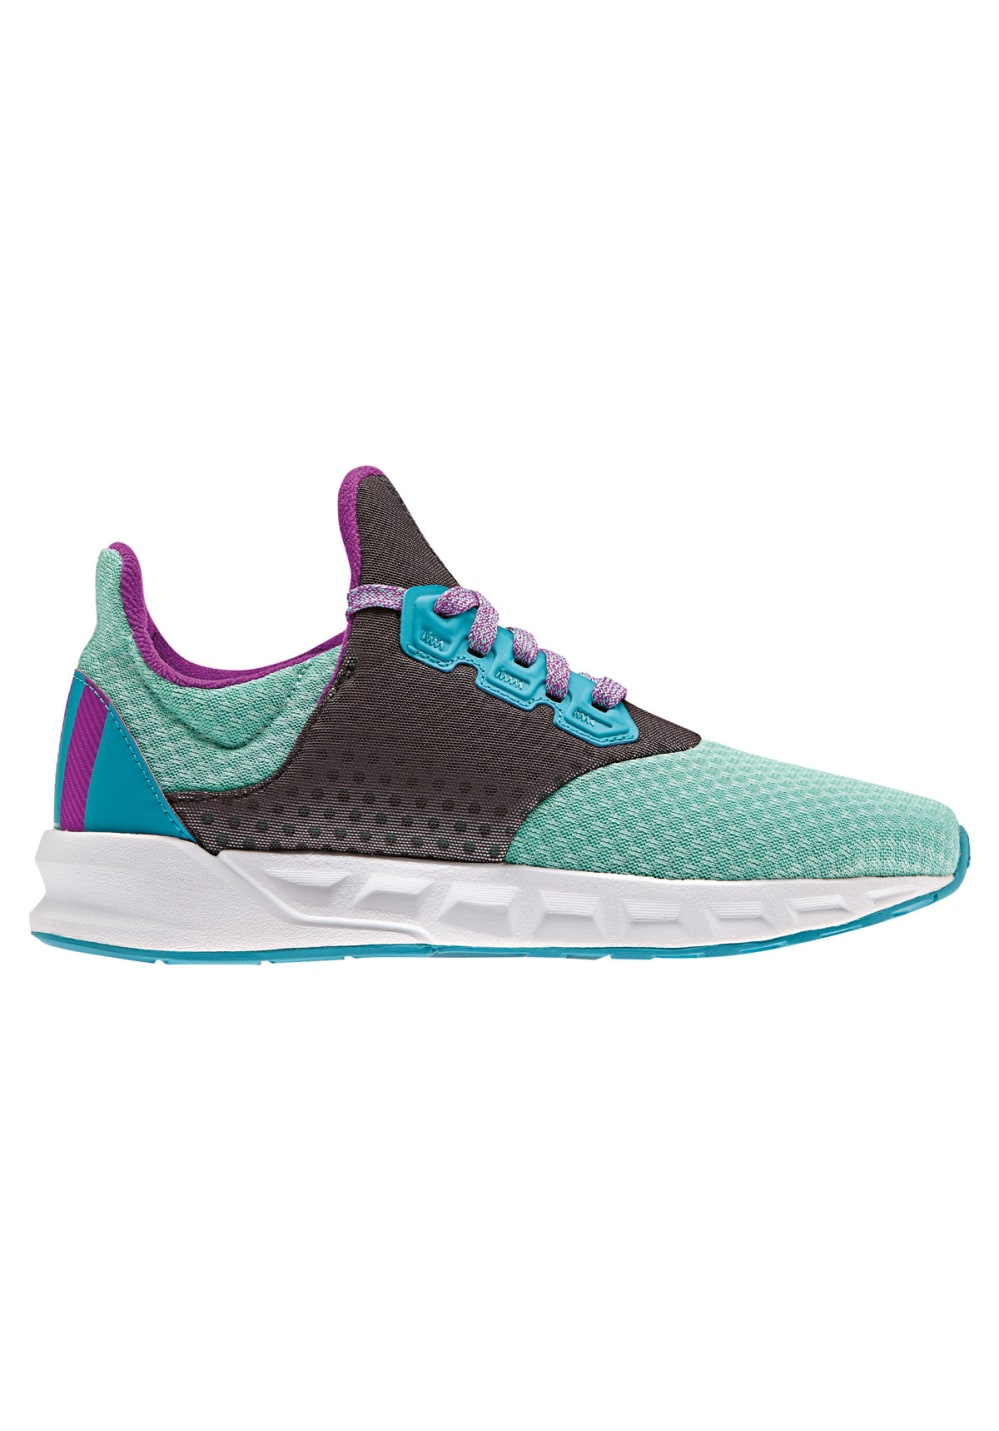 new style c6705 cb6e2 Next. -50%. This product is currently out of stock. adidas. Falcon Elite 5  Xj - Running shoes